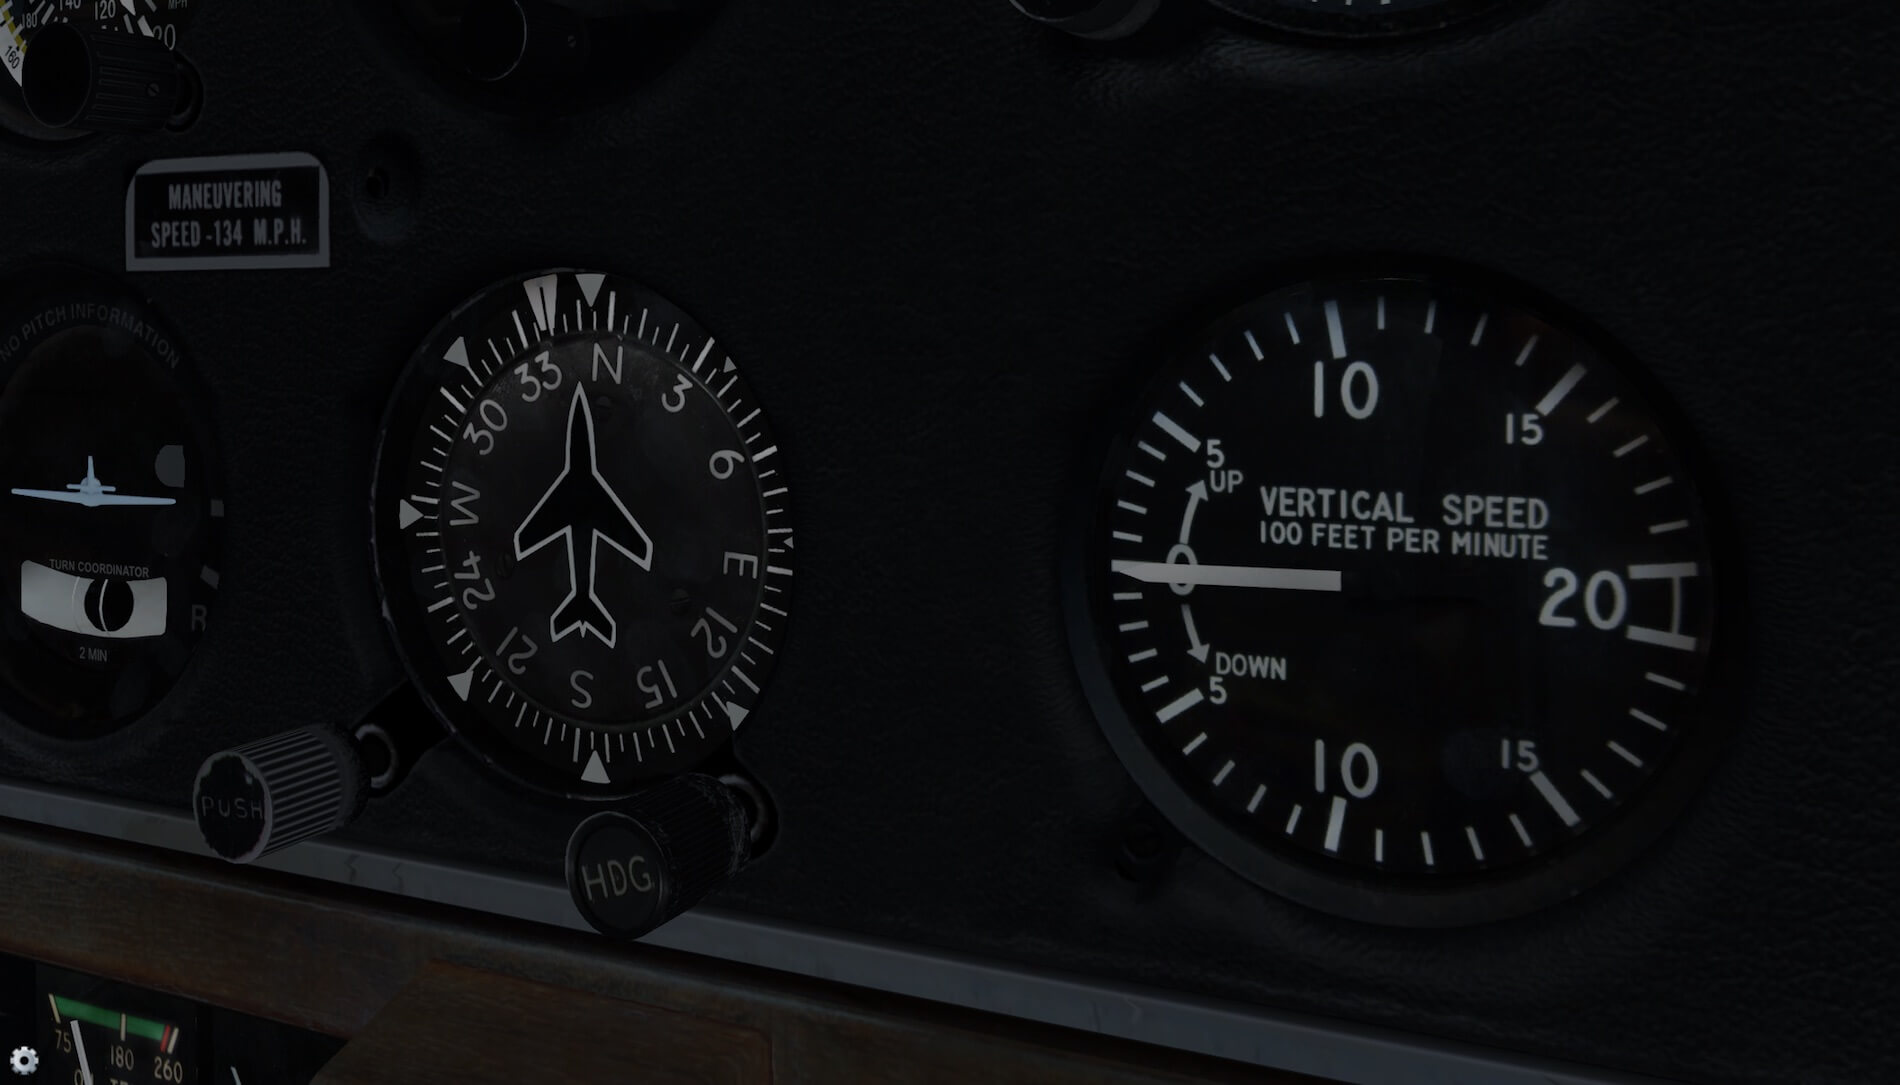 Review vFlyteAir Piper Arrow III | X-Plained, the Source for